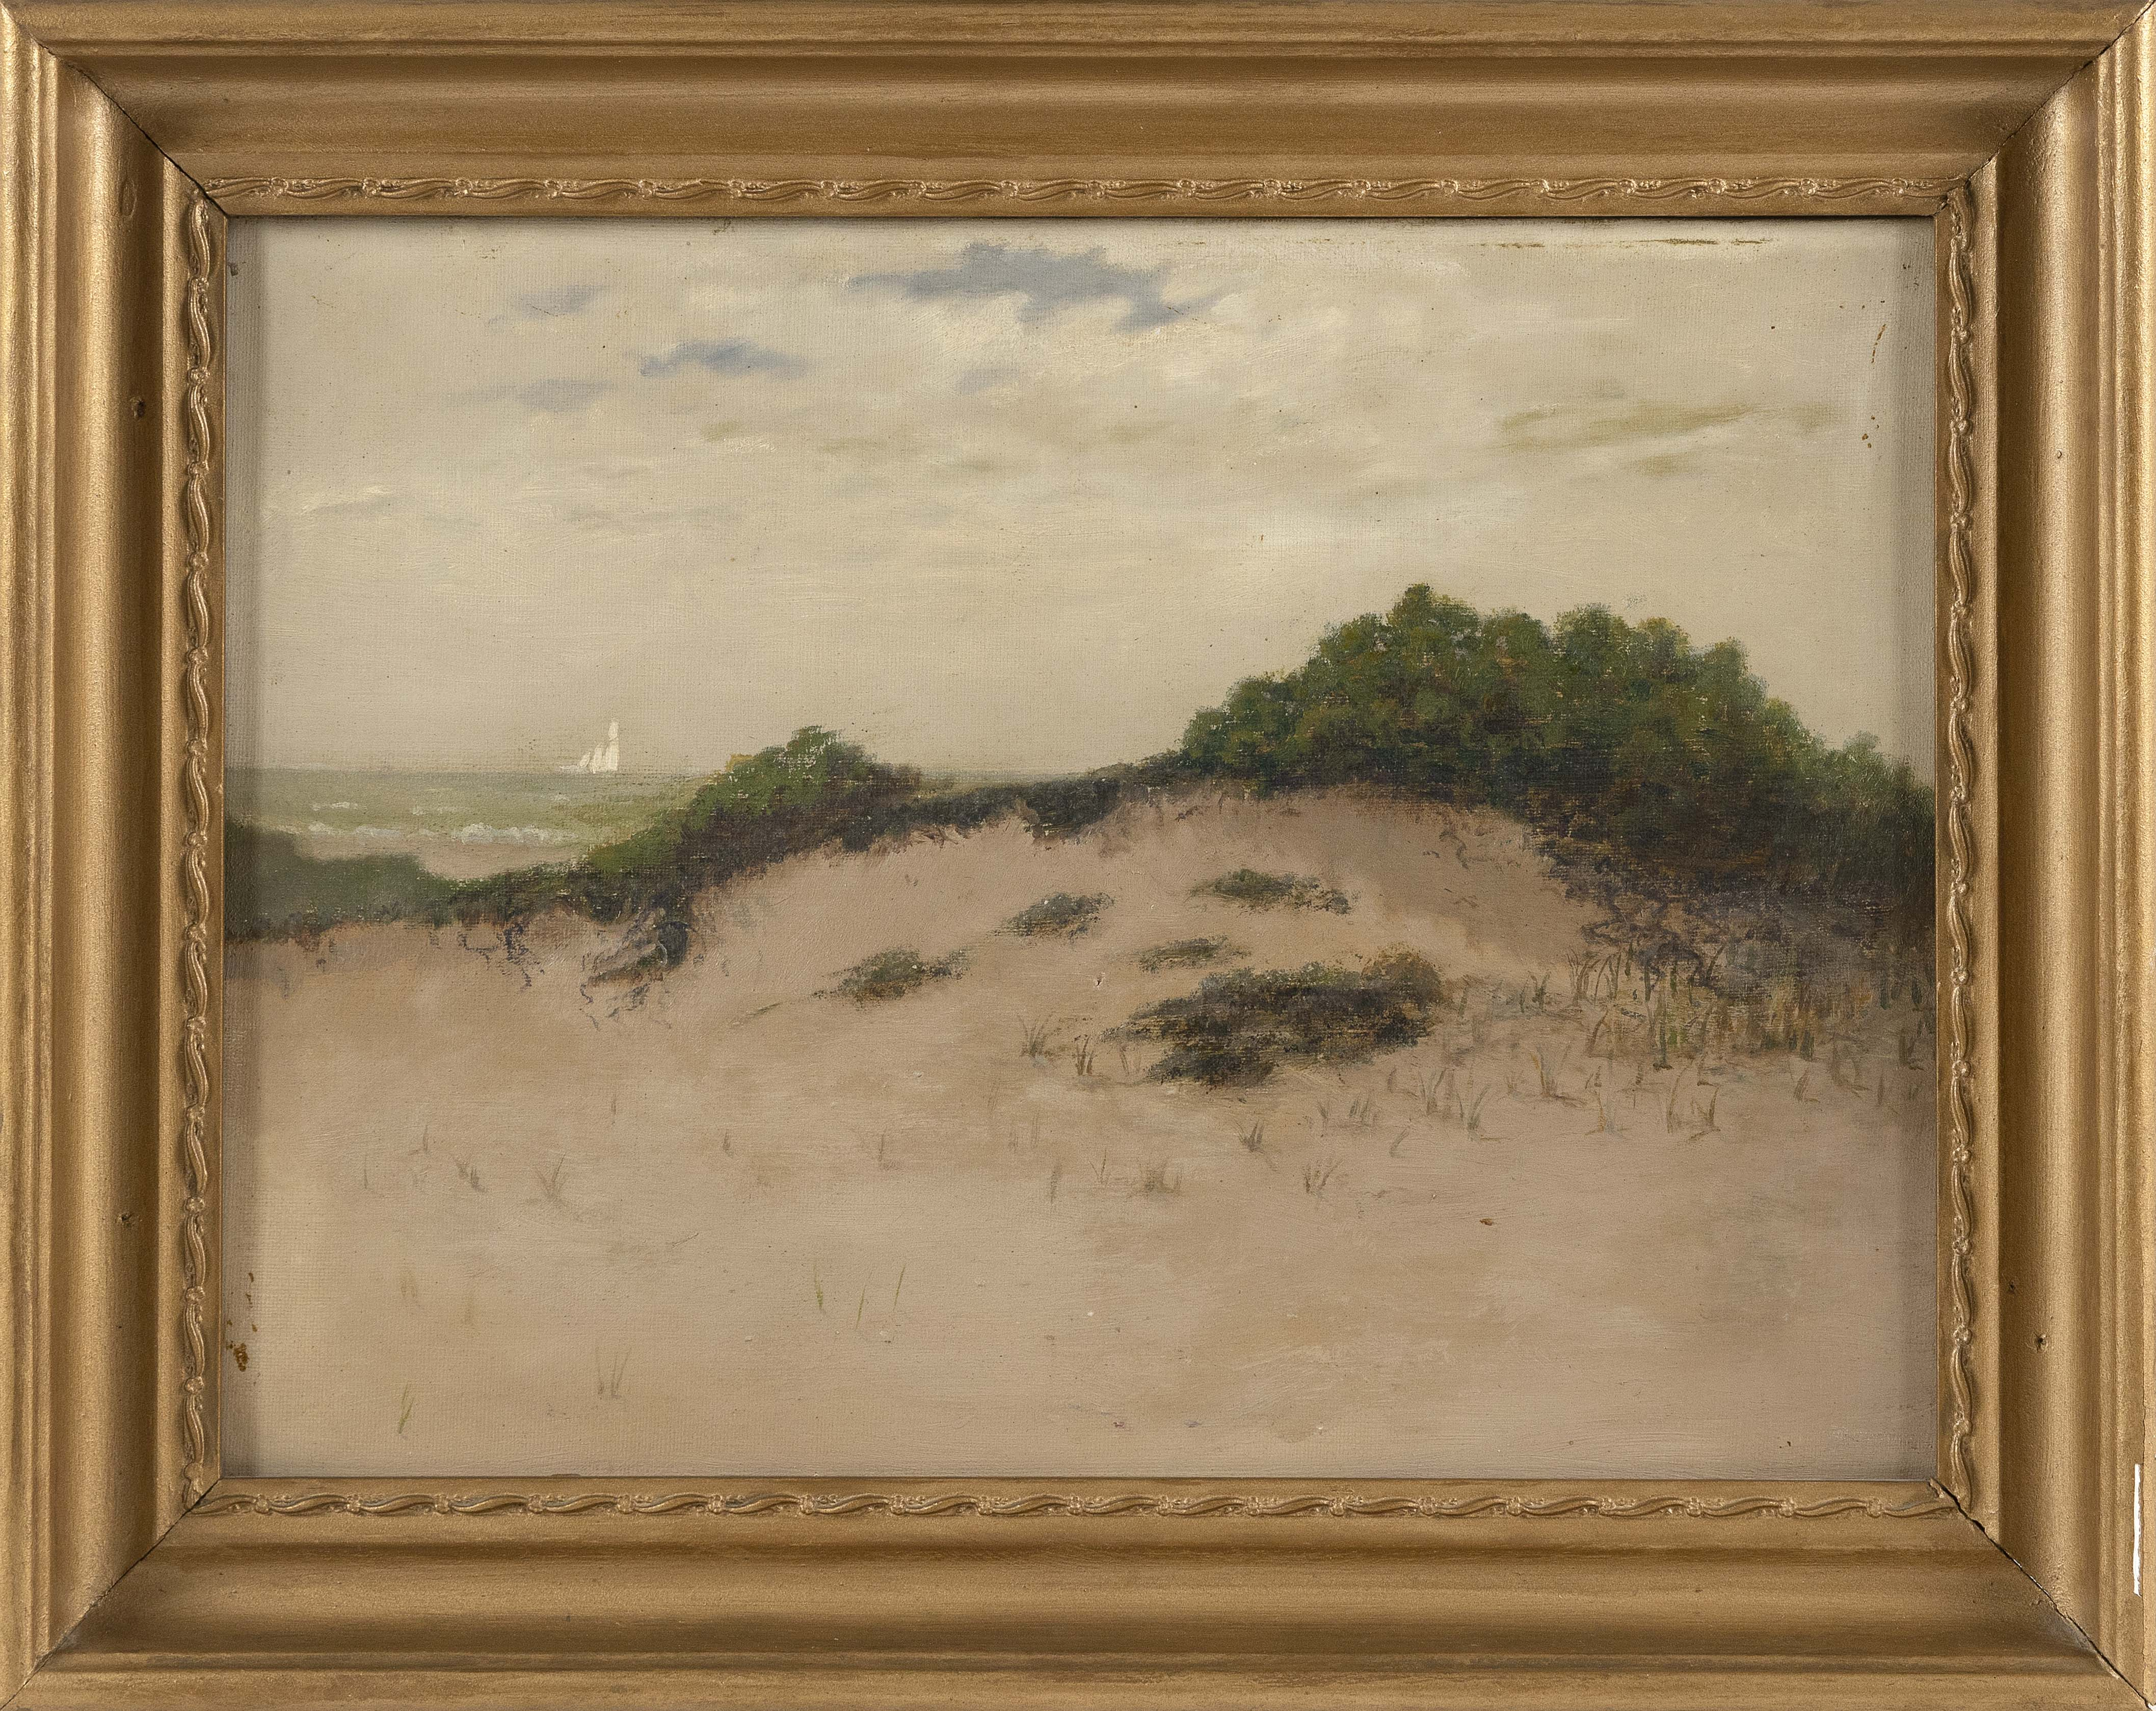 """ATTRIBUTED TO CHARLES DREW CAHOON (Massachusetts, 1861-1951), Ship of the beach., Oil on canvas, 12.5"""" x 17.5"""". Framed 16"""" x 20.5""""."""